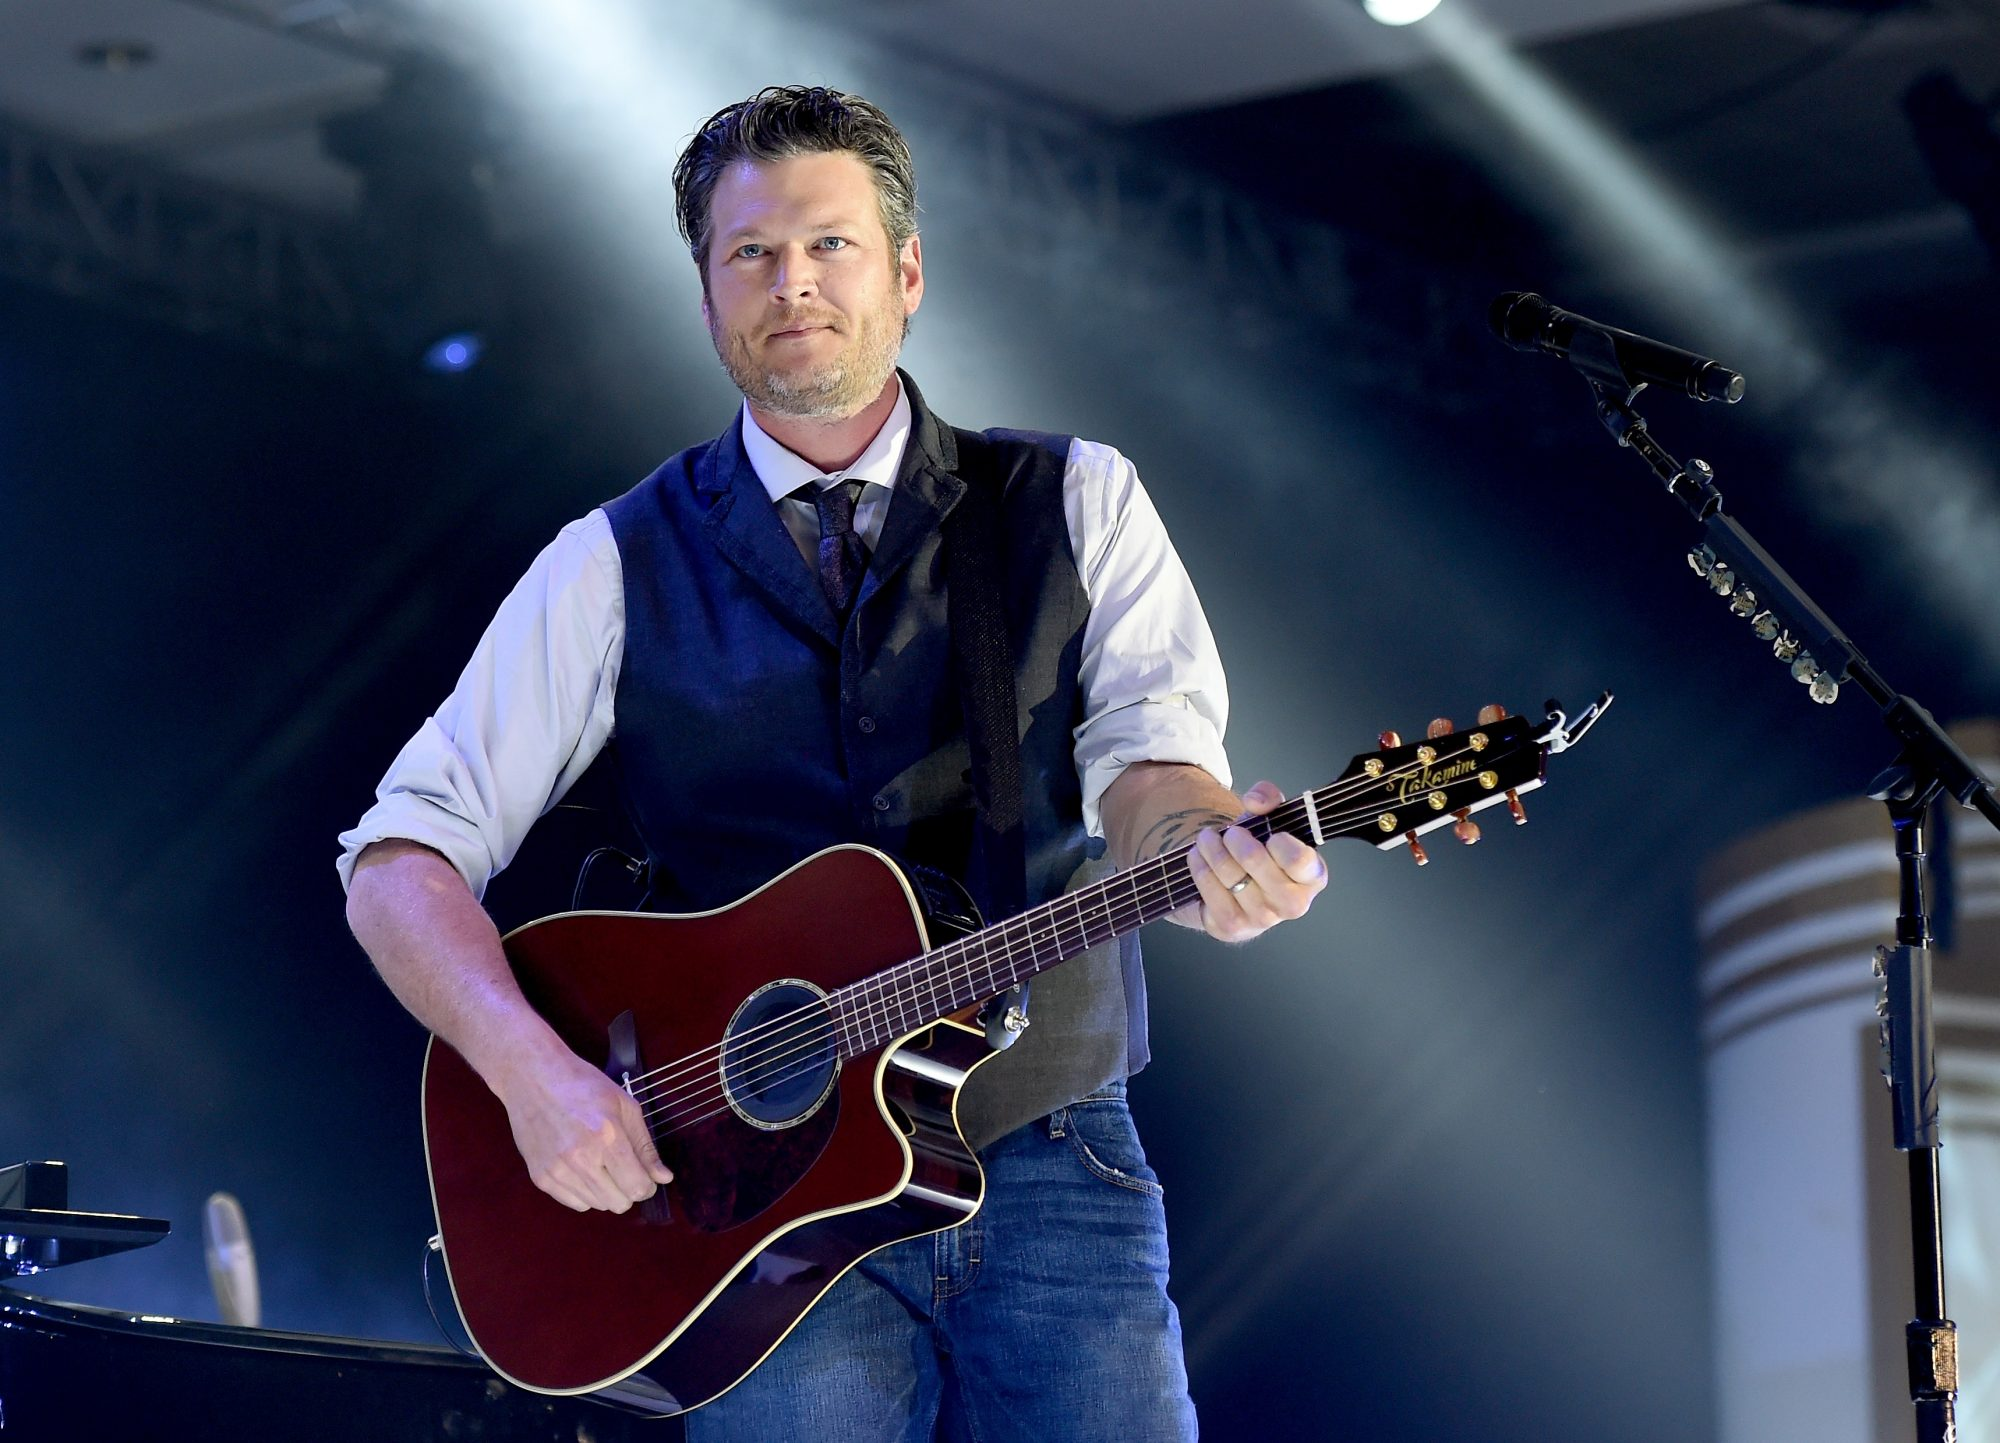 Blake Shelton onstage during Muhammad Ali's Celebrity Fight Night XXI at JW Marriott Phoenix Desert Ridge Resort & Spa on March 28, 2015 in Scottsdale, Arizona.